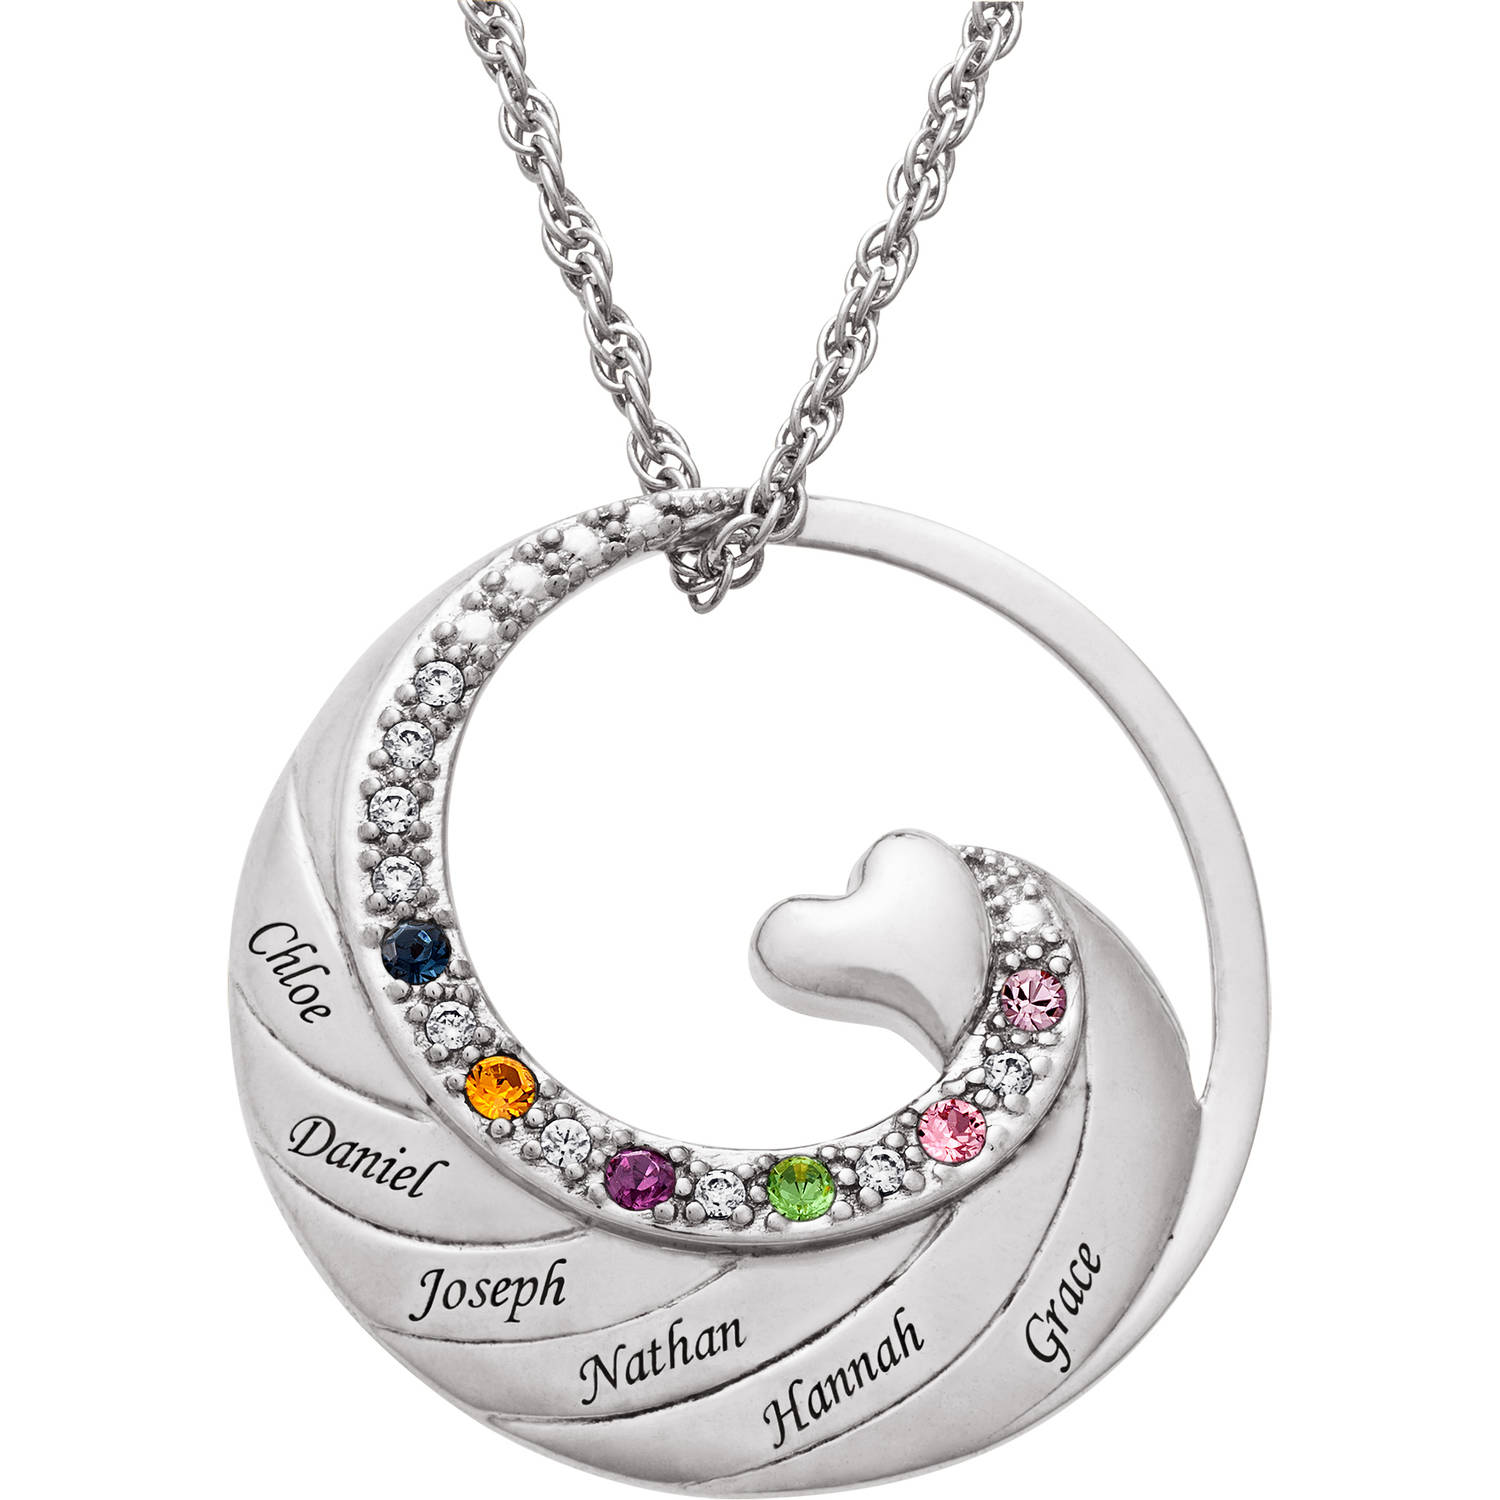 Personalized Women's Gold-Plated or Rhodium-Plated Family Name and Birthstone Circle with Heart Necklace, 20""